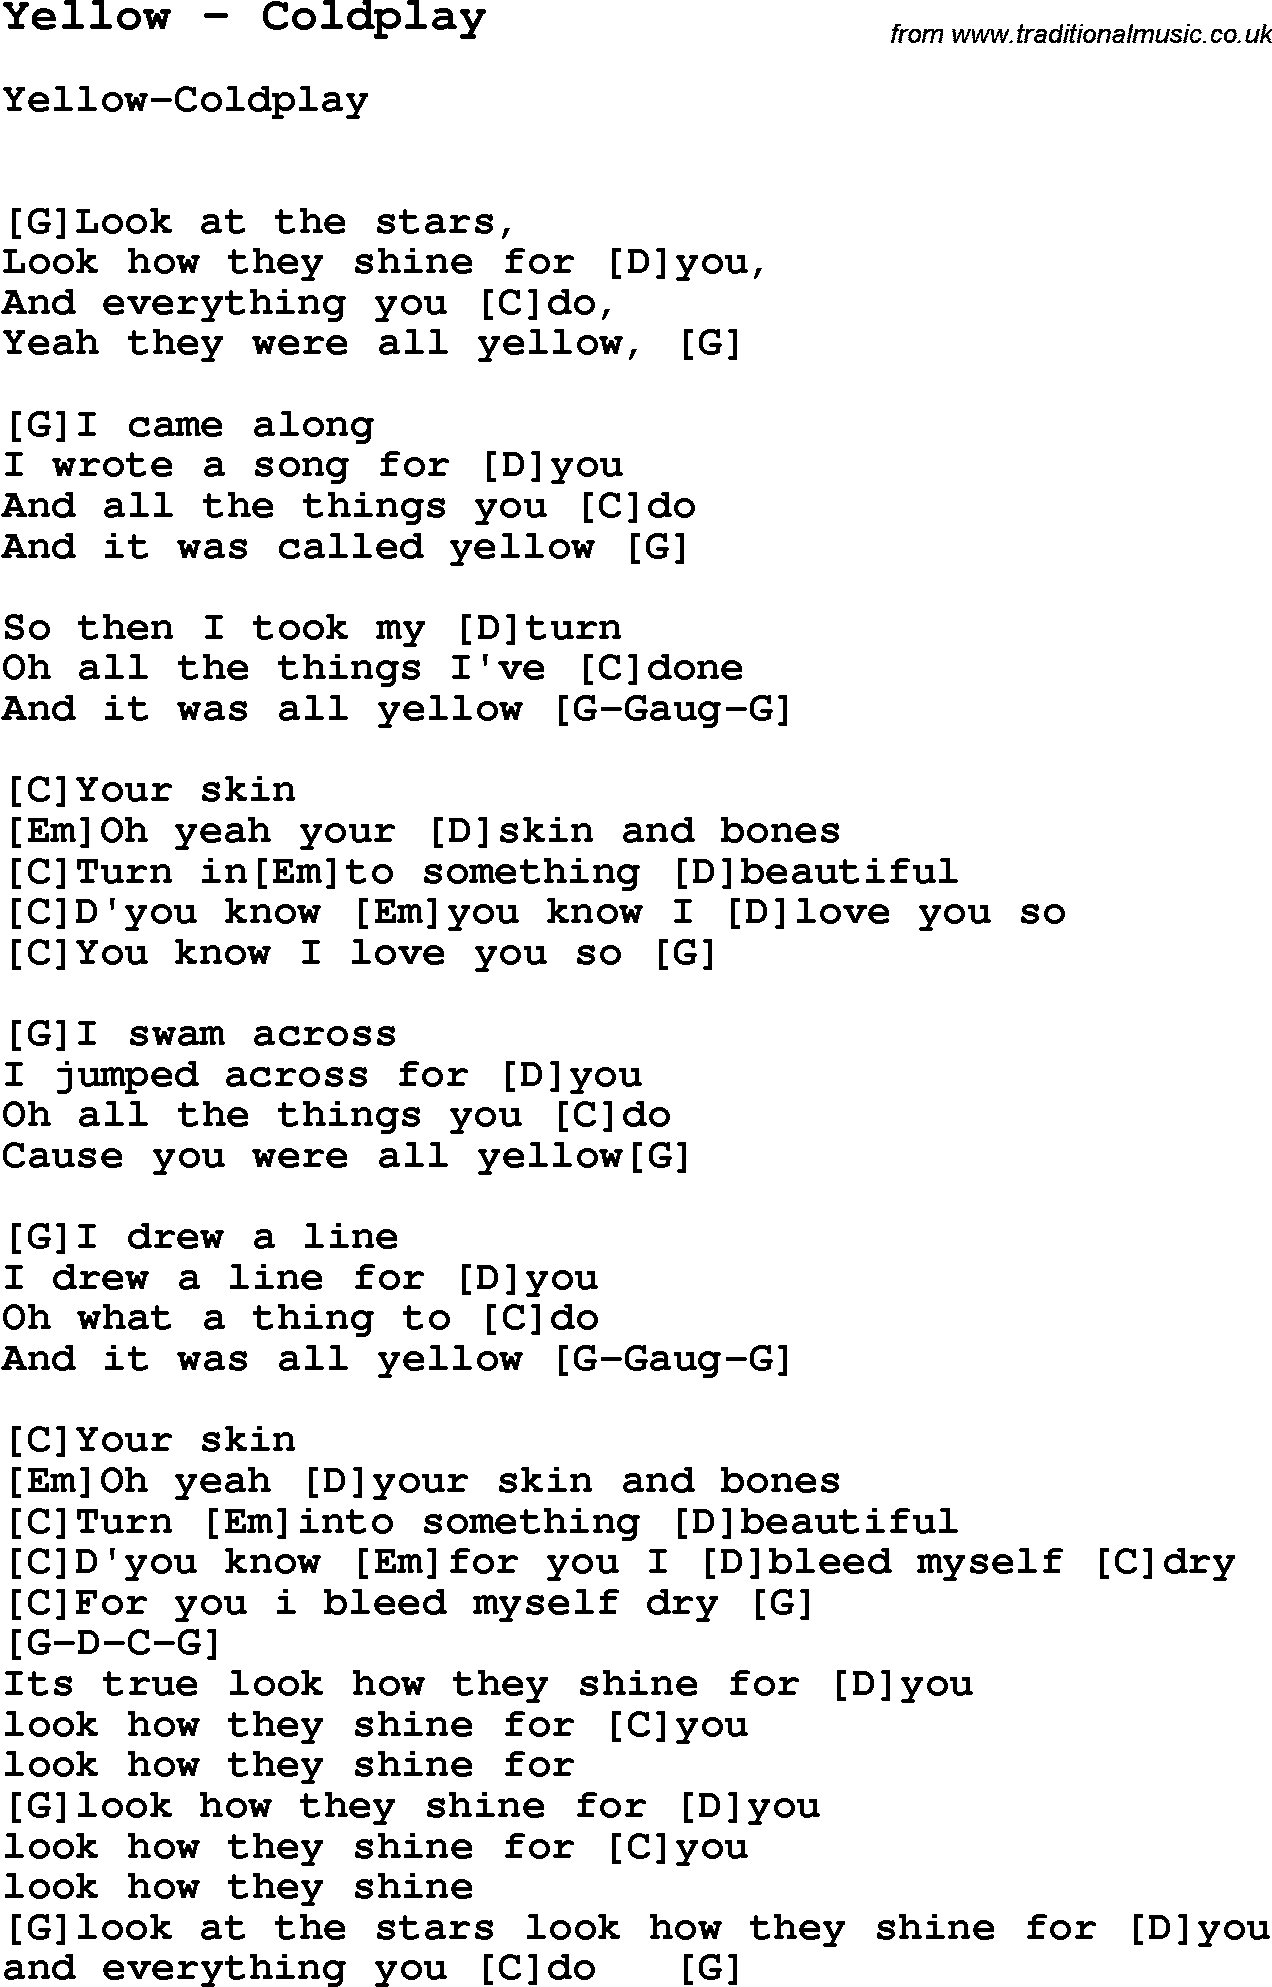 Song Yellow By Coldplay With Lyrics For Vocal Performance And